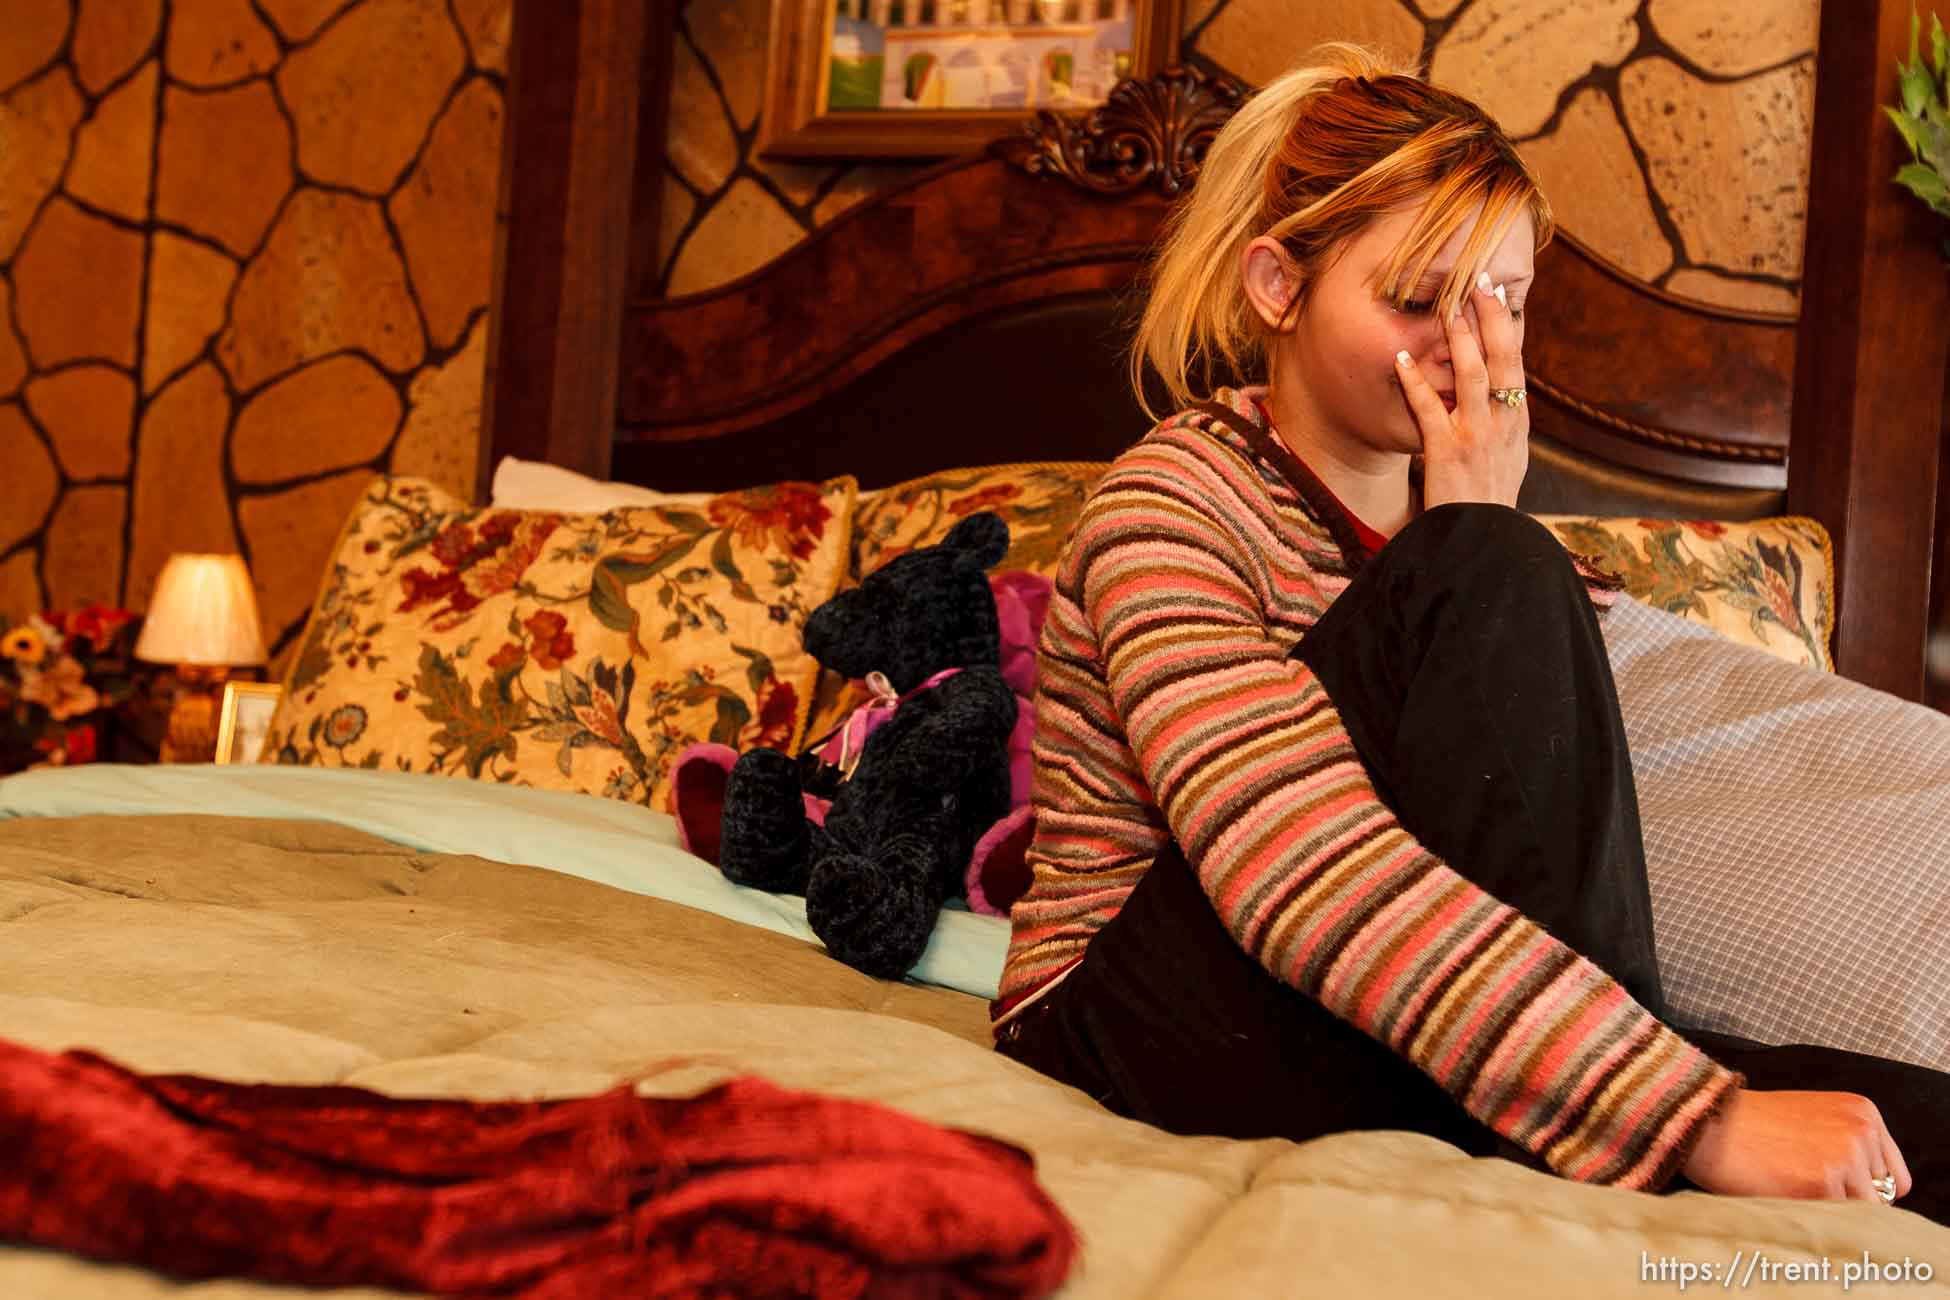 Monika is a 17-year-old girl who was in a long-distance relationship with Trolley Square gunman Sulejman Talovic in the final sixteen days of his life. She was photographed in her bedroom in Amarillo, Texas.